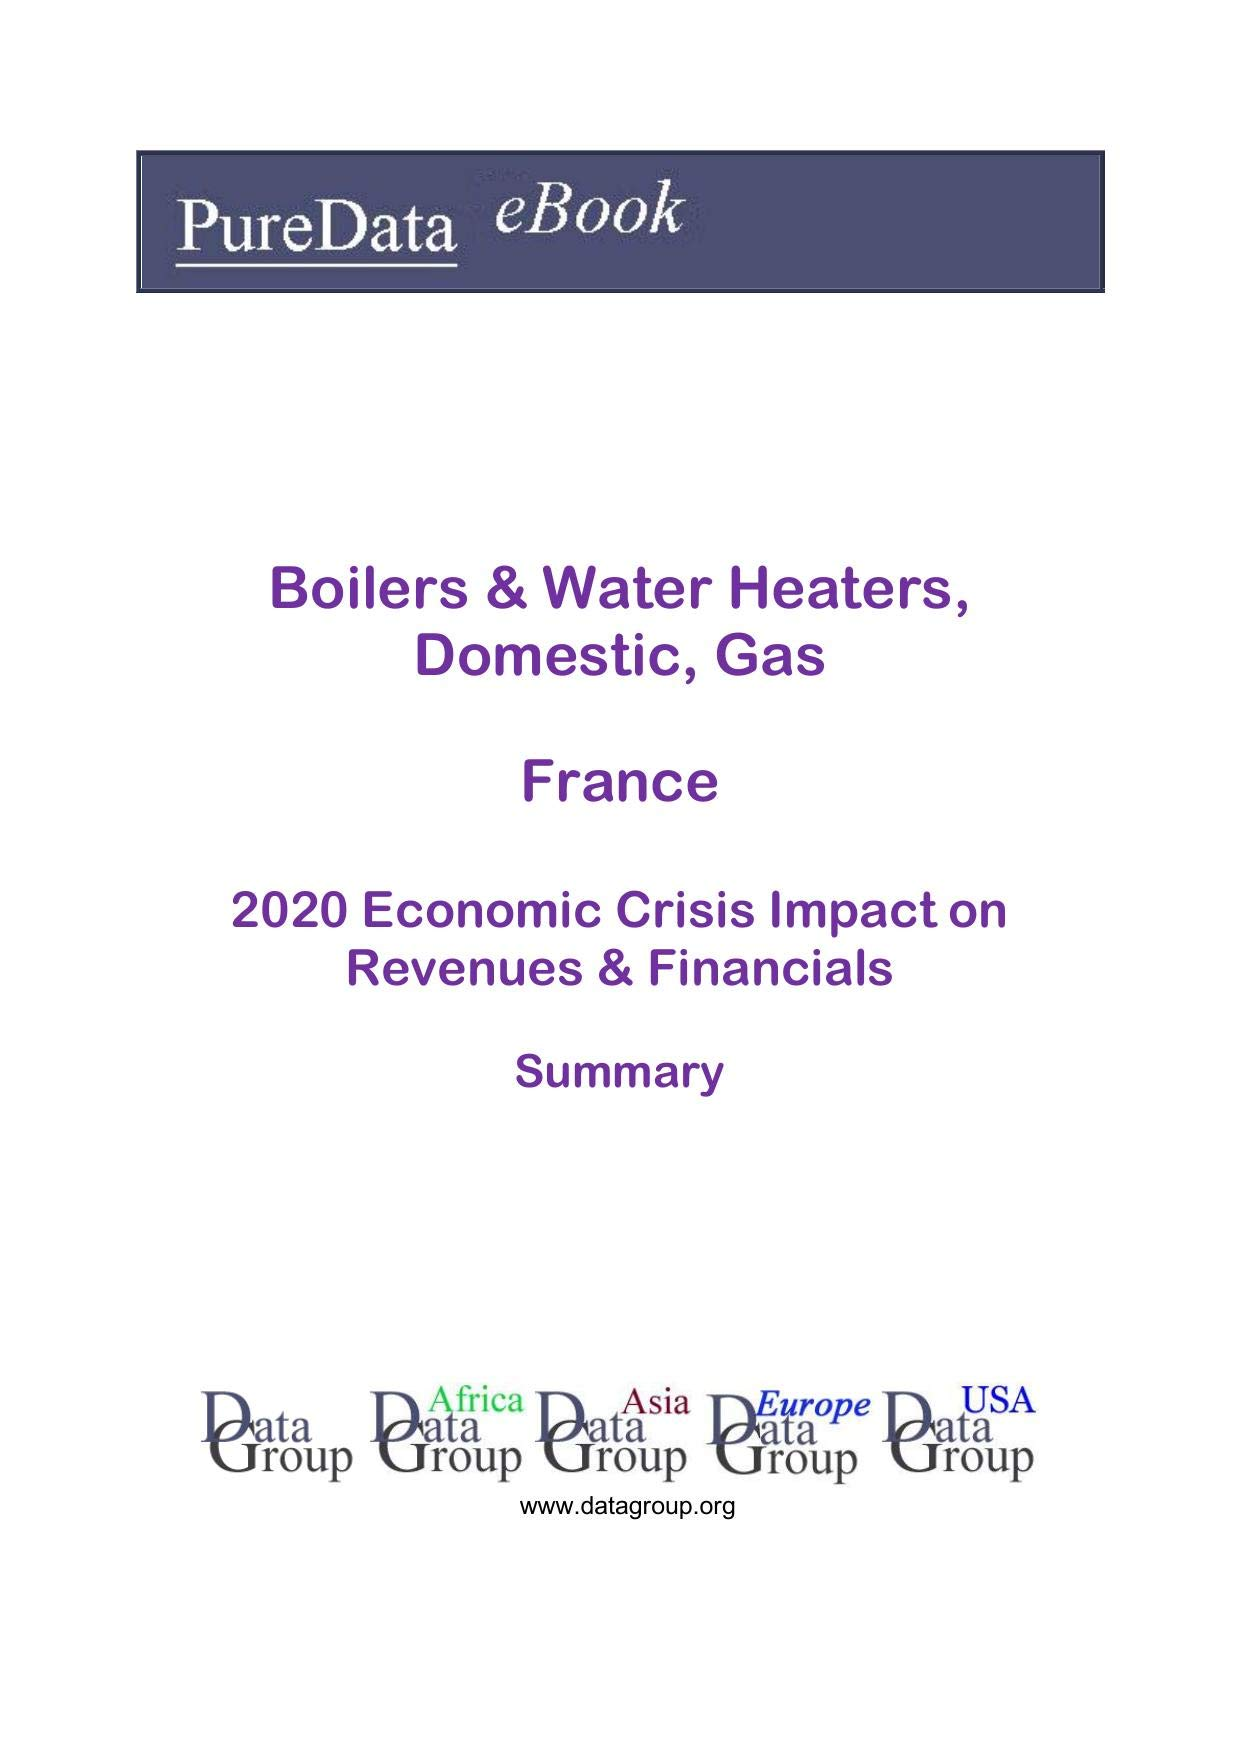 Boilers & Water Heaters, Domestic, Gas France Summary: 2020 Economic Crisis Impact on Revenues & Financials